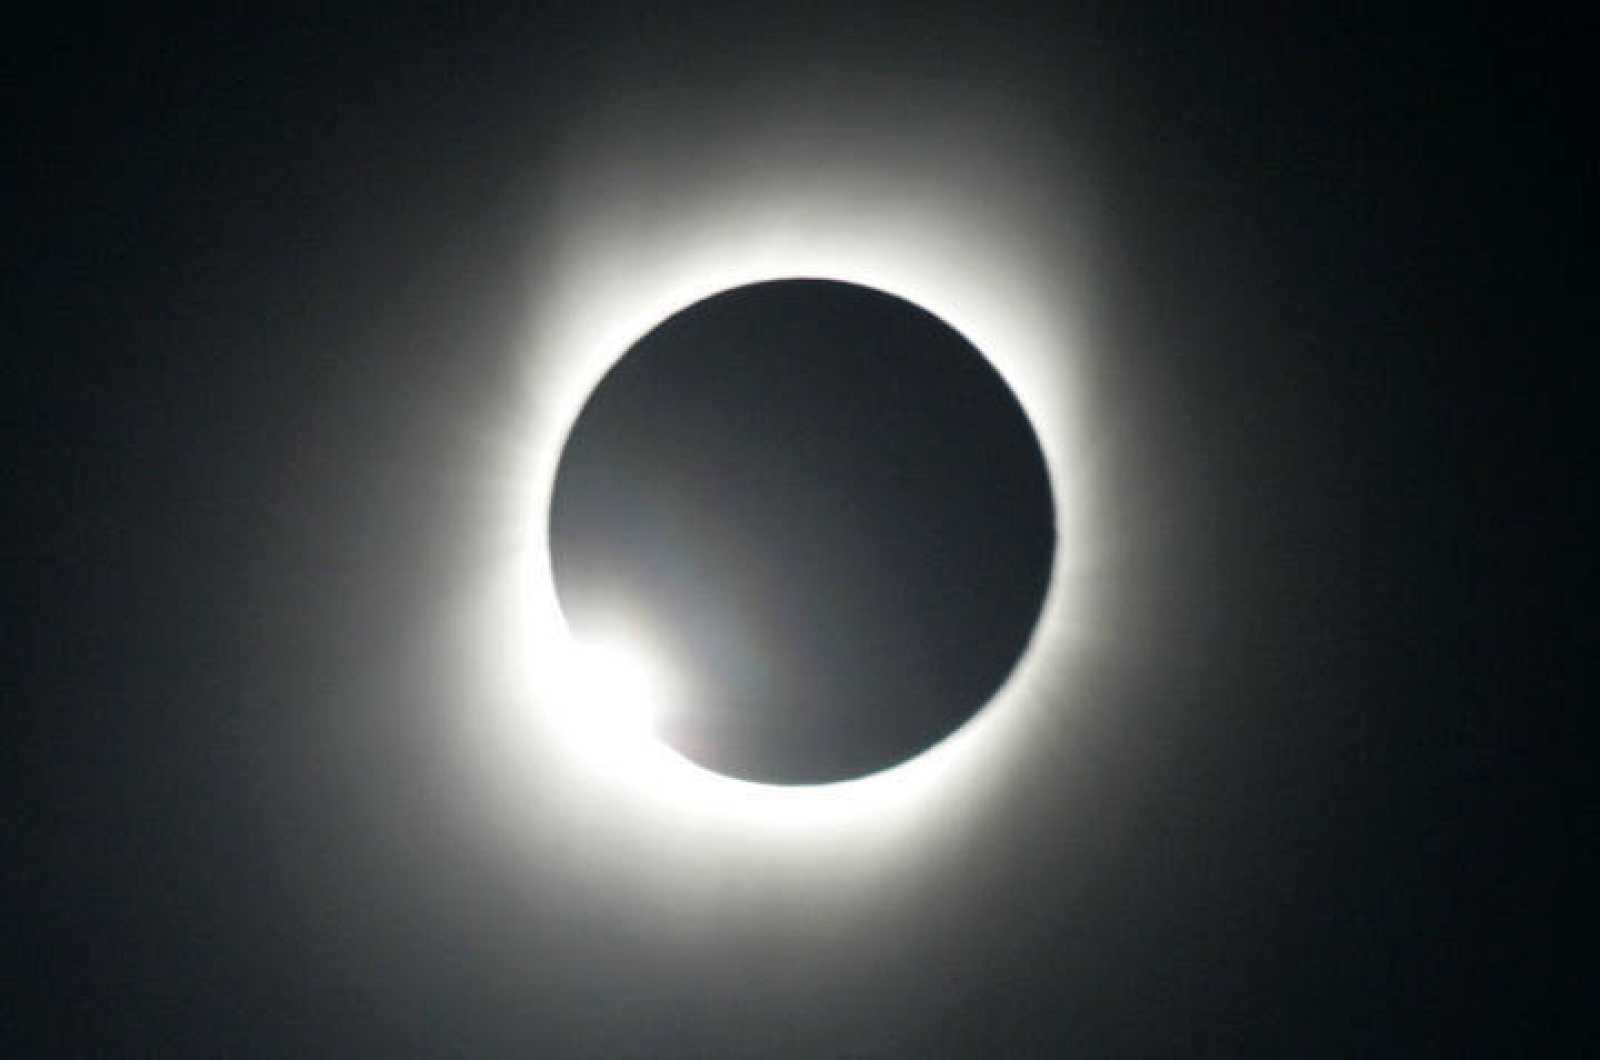 The moon passes between the sun and the earth during a total solar eclipse in Varanasi